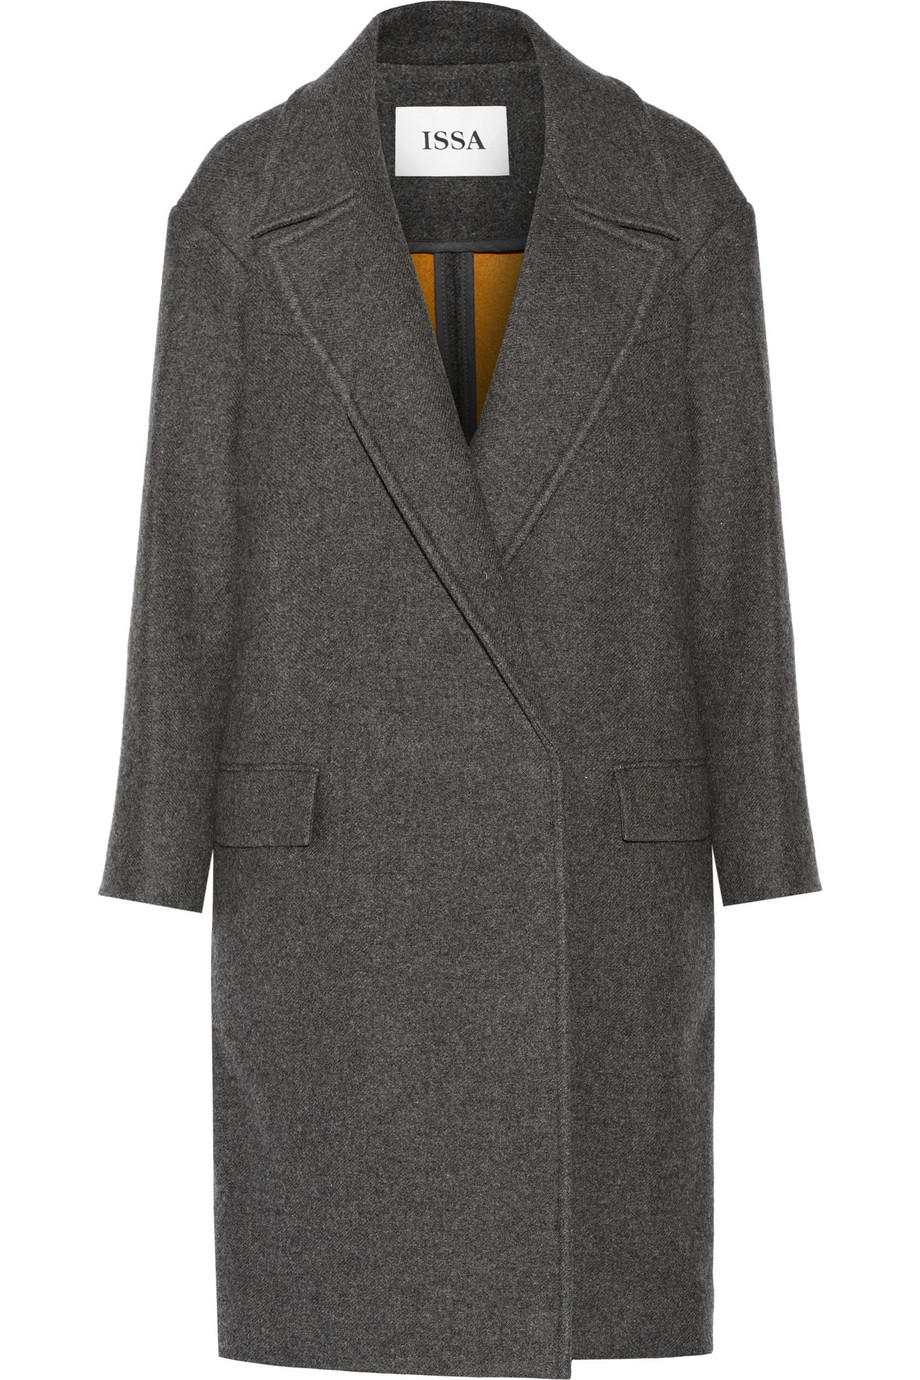 Up to 60% Off Grey Color Apparel Sale @ The Outnet